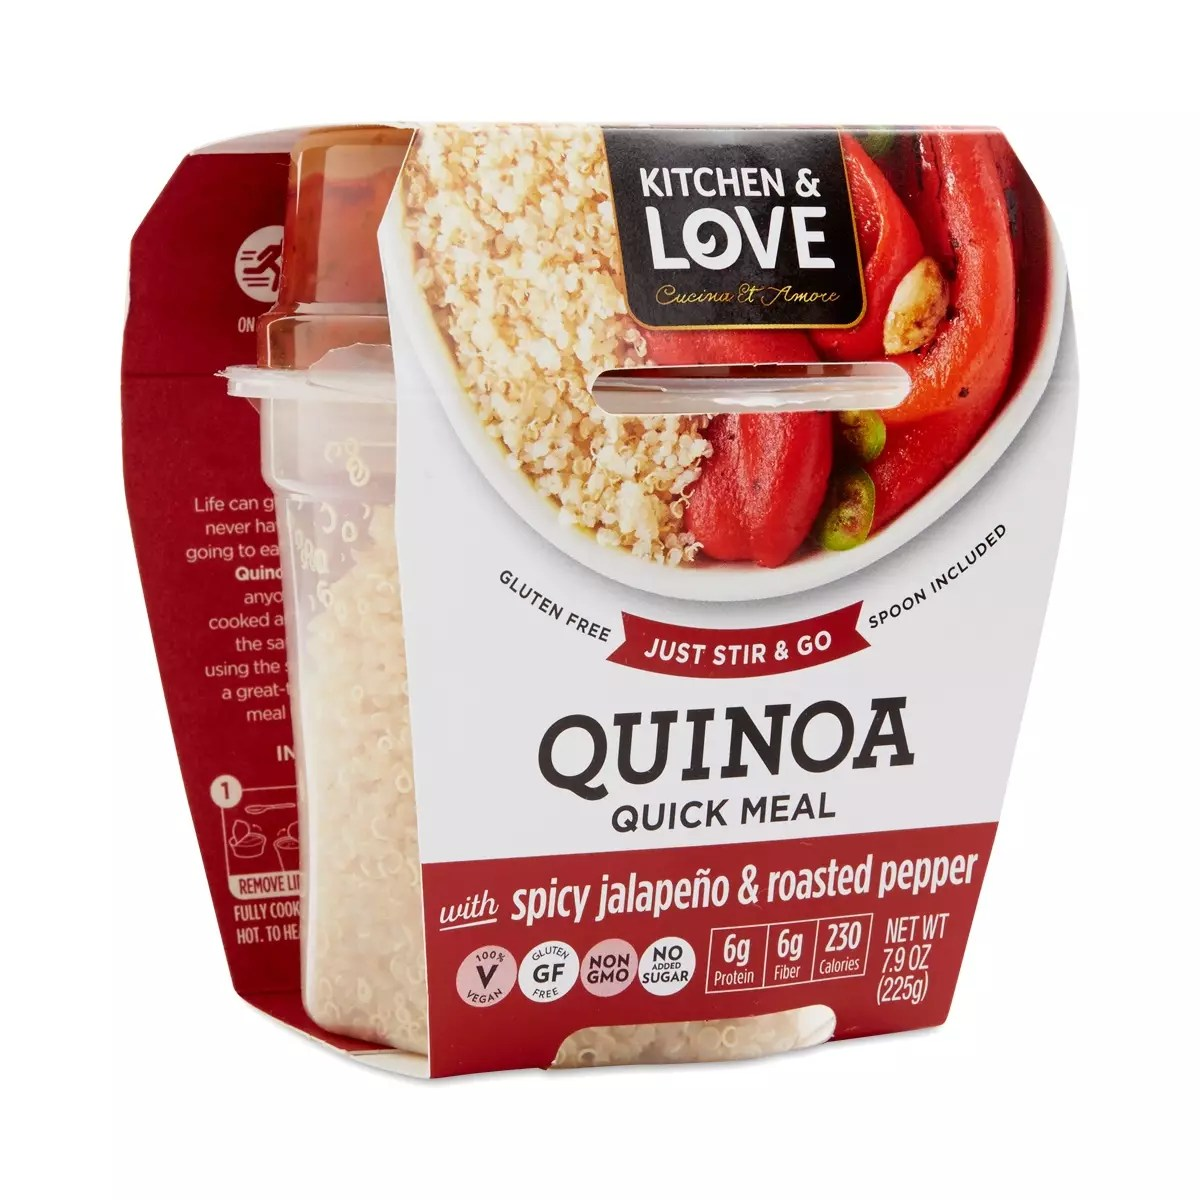 Cucina & Amore Inc Spicy Jalapeno Roasted Peppers Quinoa Meal